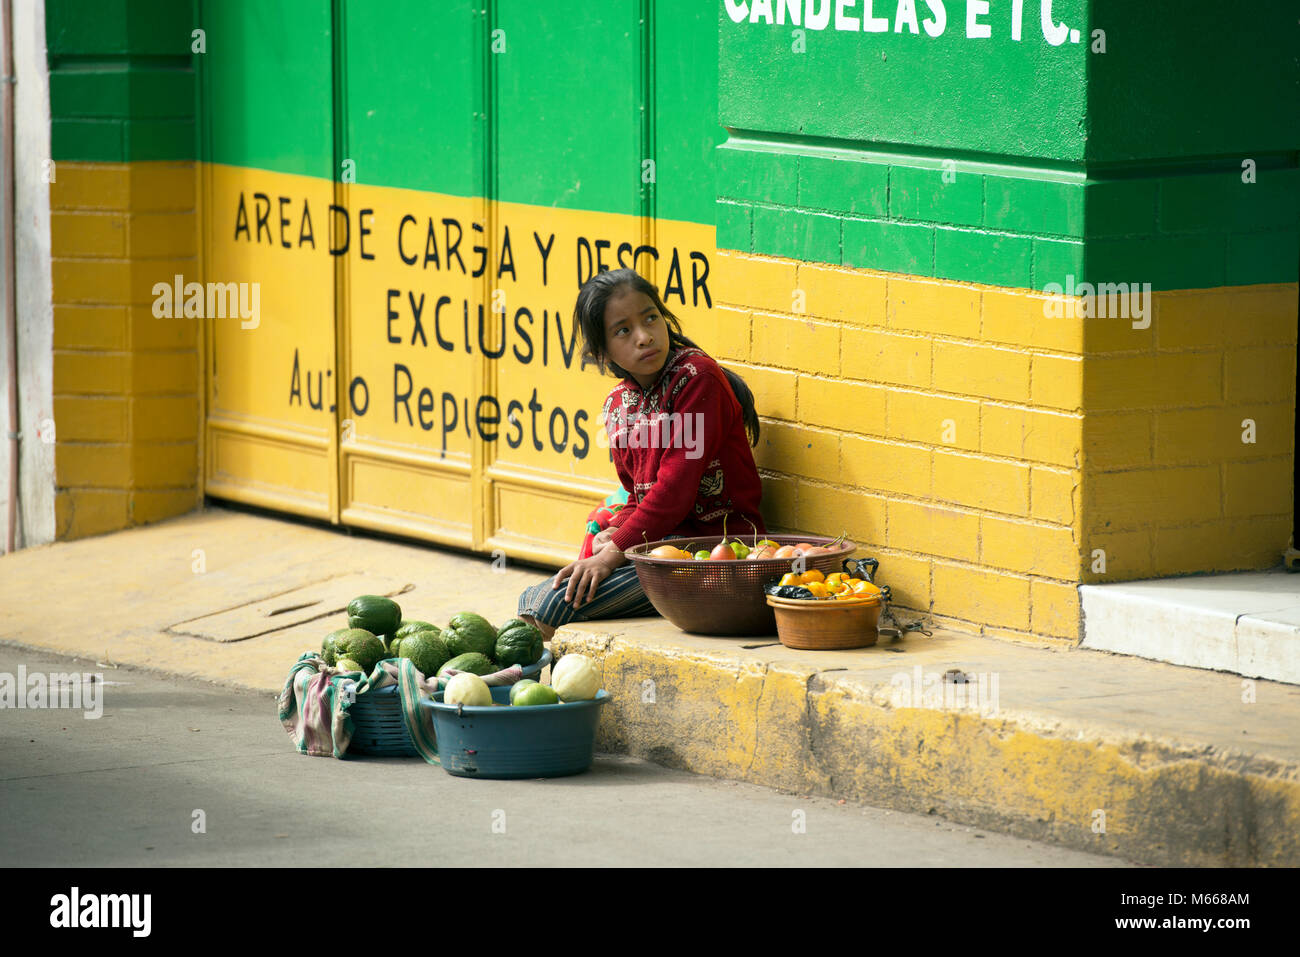 A young, indigenous K'iche' (Quiché) Maya girl in traditional dress selling fruit and vegetables in - Stock Image